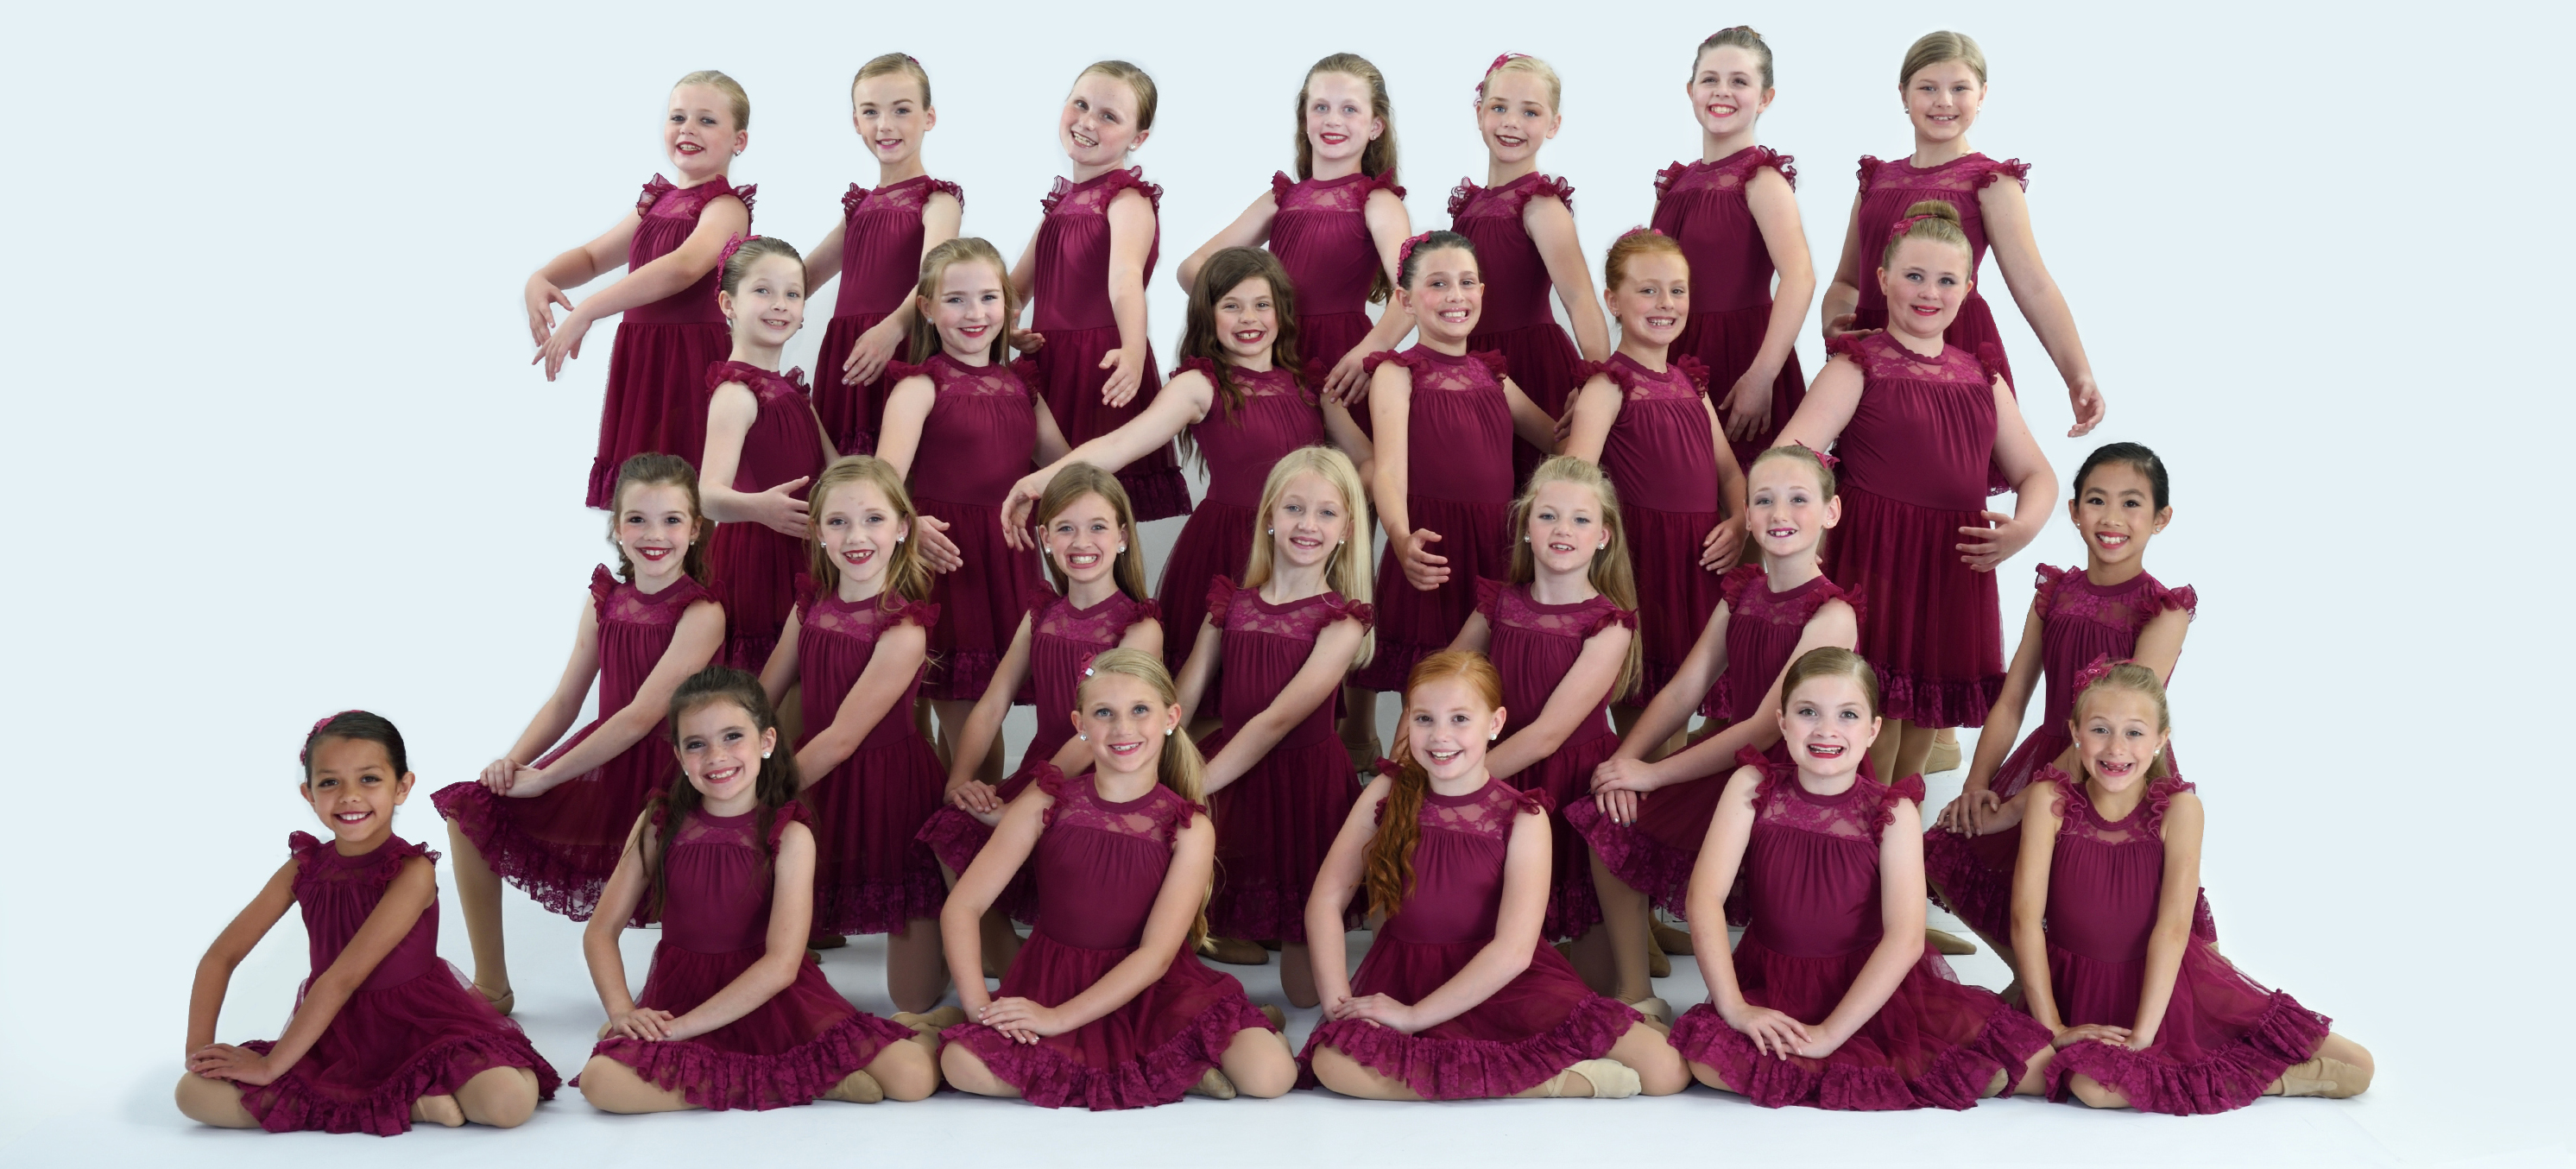 Brekke Dance Center - Dance Studios in Des Moines and Grimes, Iowa